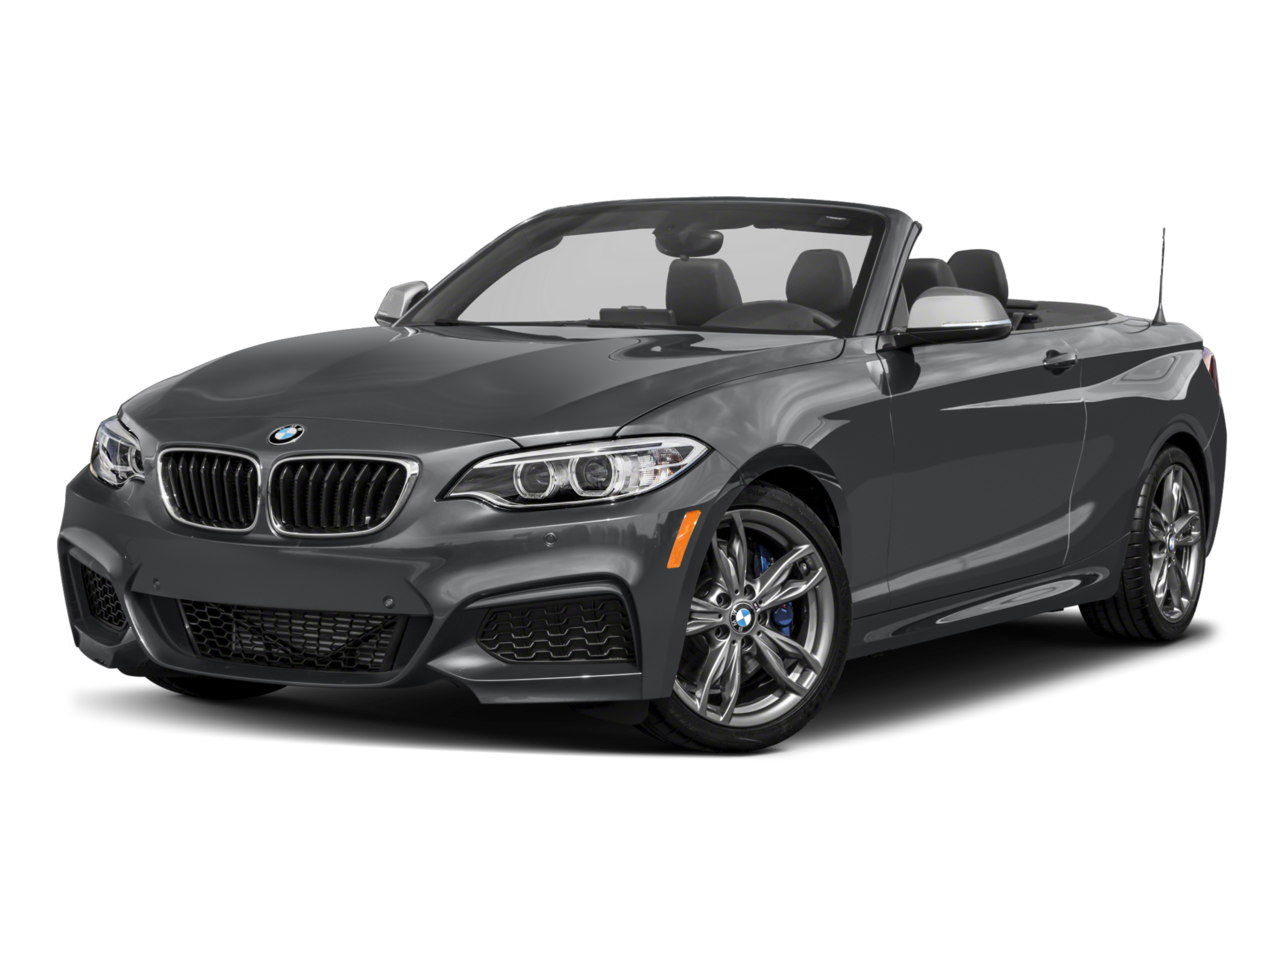 2017 BMW 2 Series - Chicago, IL